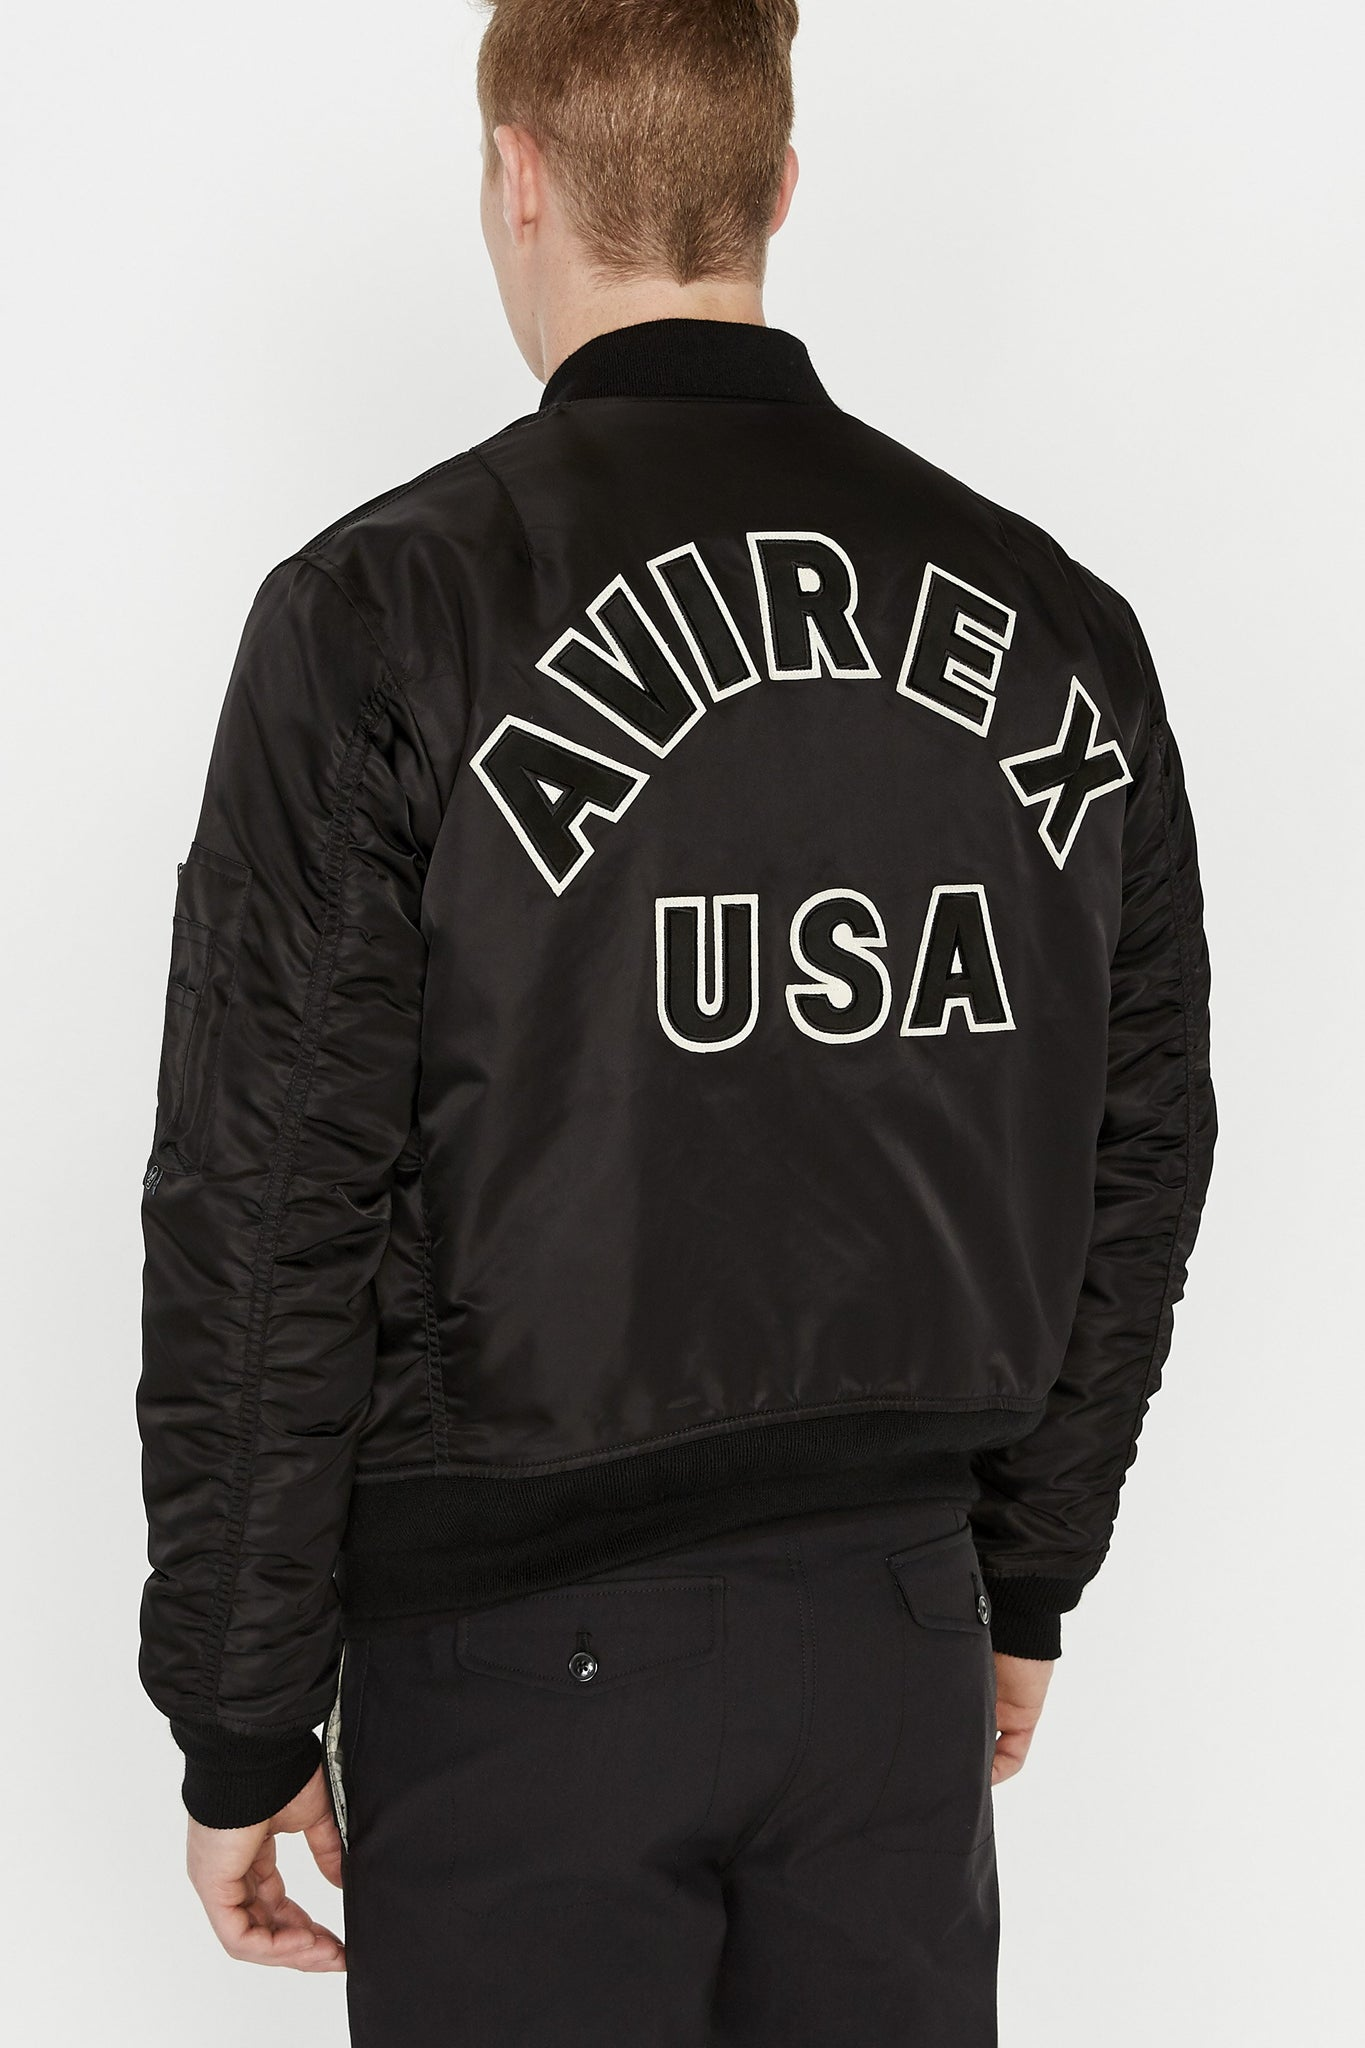 Back view of men wearing a black original aviation bomber nylon jacket with bold black text lettering Avirex USA